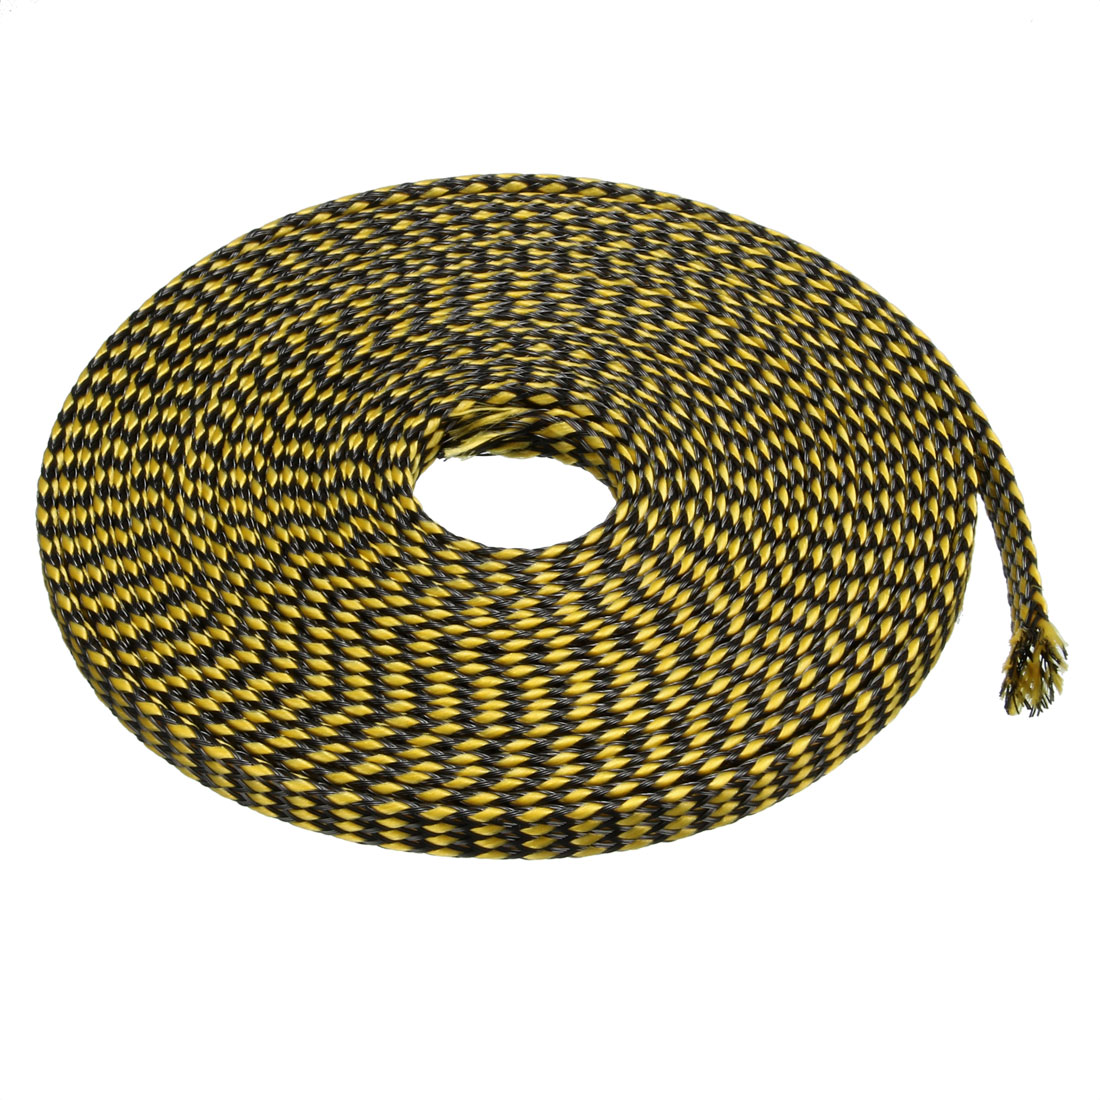 4mm PET Cable Wire Wrap Expandable Braided Sleeving Black Yellow 5M Length